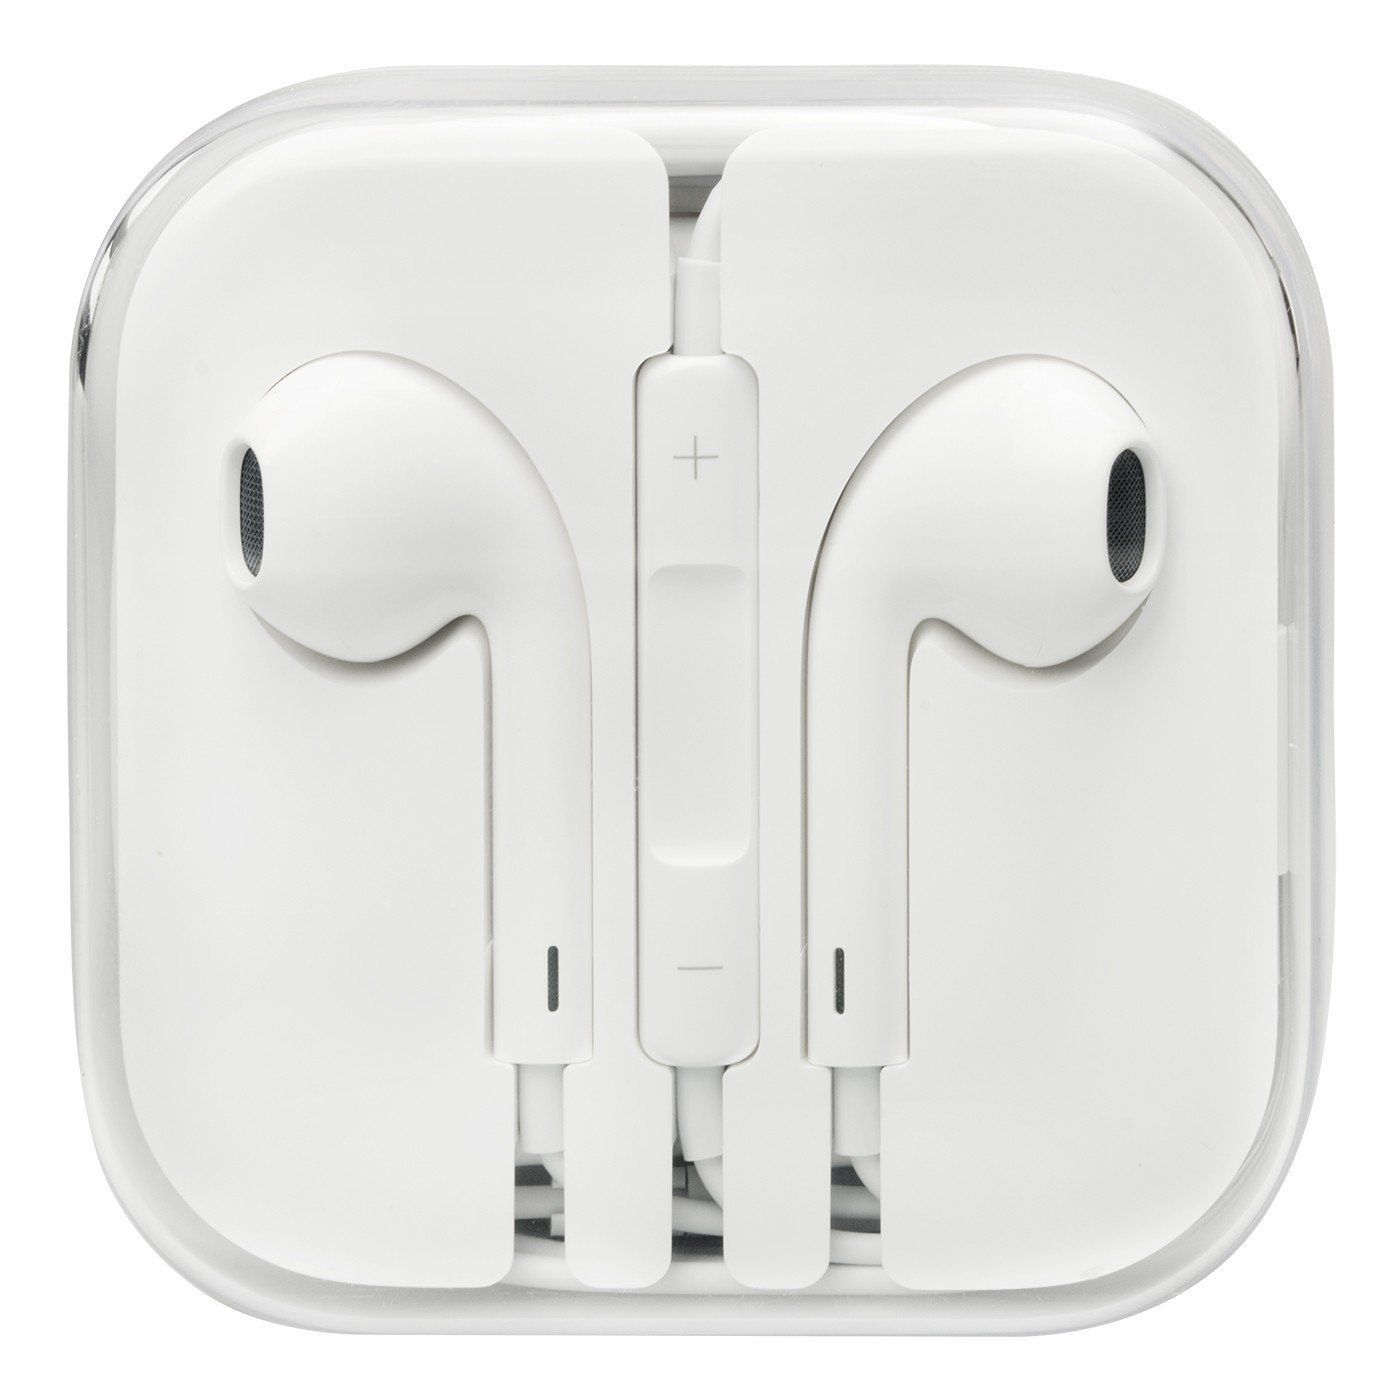 Originele_Apple_oordopjes_Earpods_iPhone_4_4S_5_5C_5S_6_6S_6_Plus_6S_plus Hi Genius iPhone, Samsung reparatie